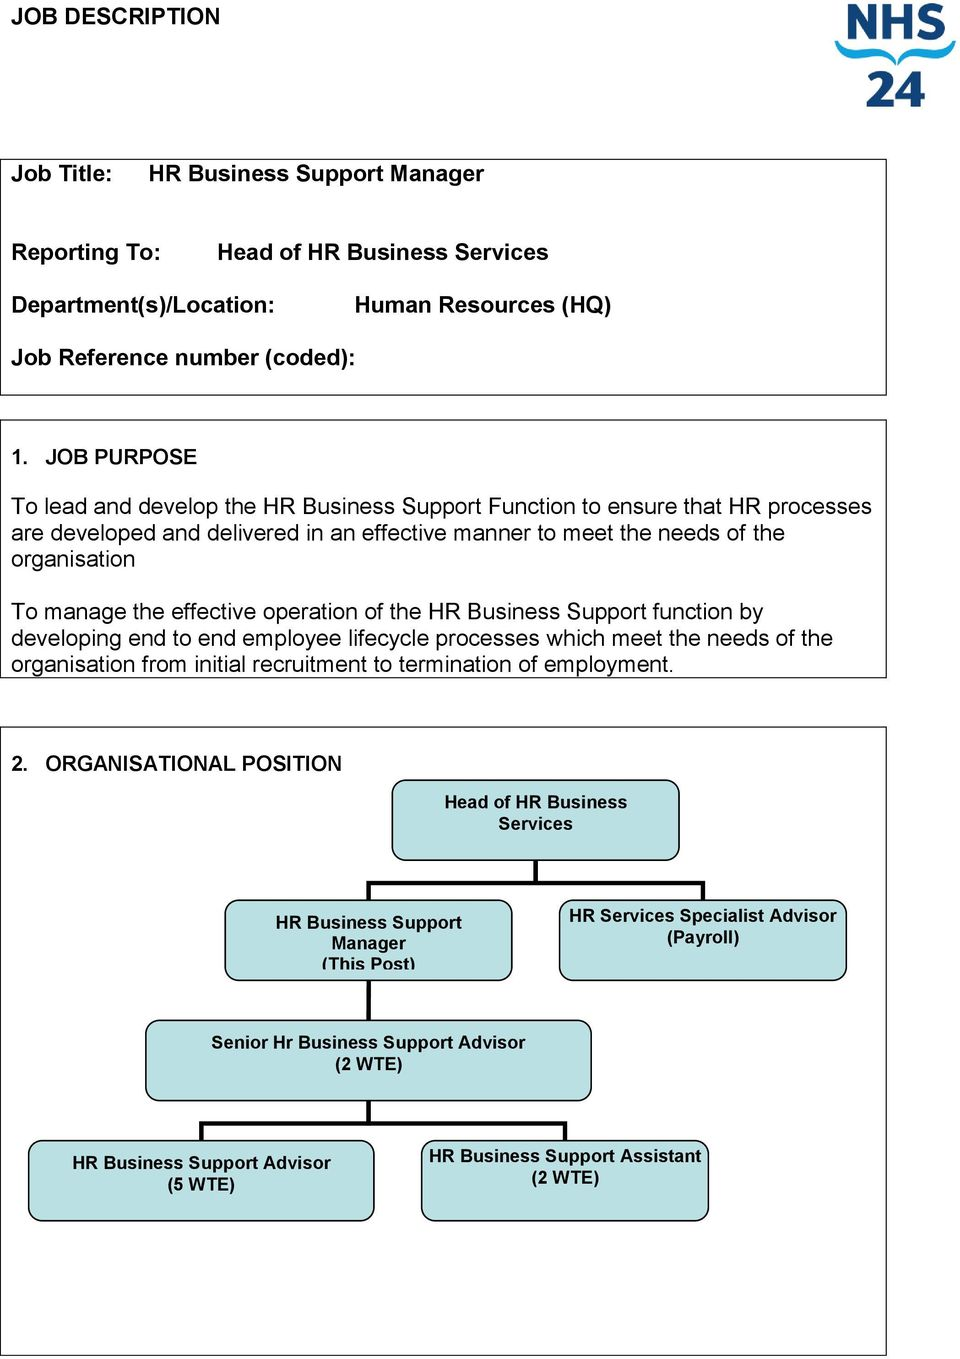 effective operation of the HR Business Support function by developing end to end employee lifecycle processes which meet the needs of the organisation from initial recruitment to termination of